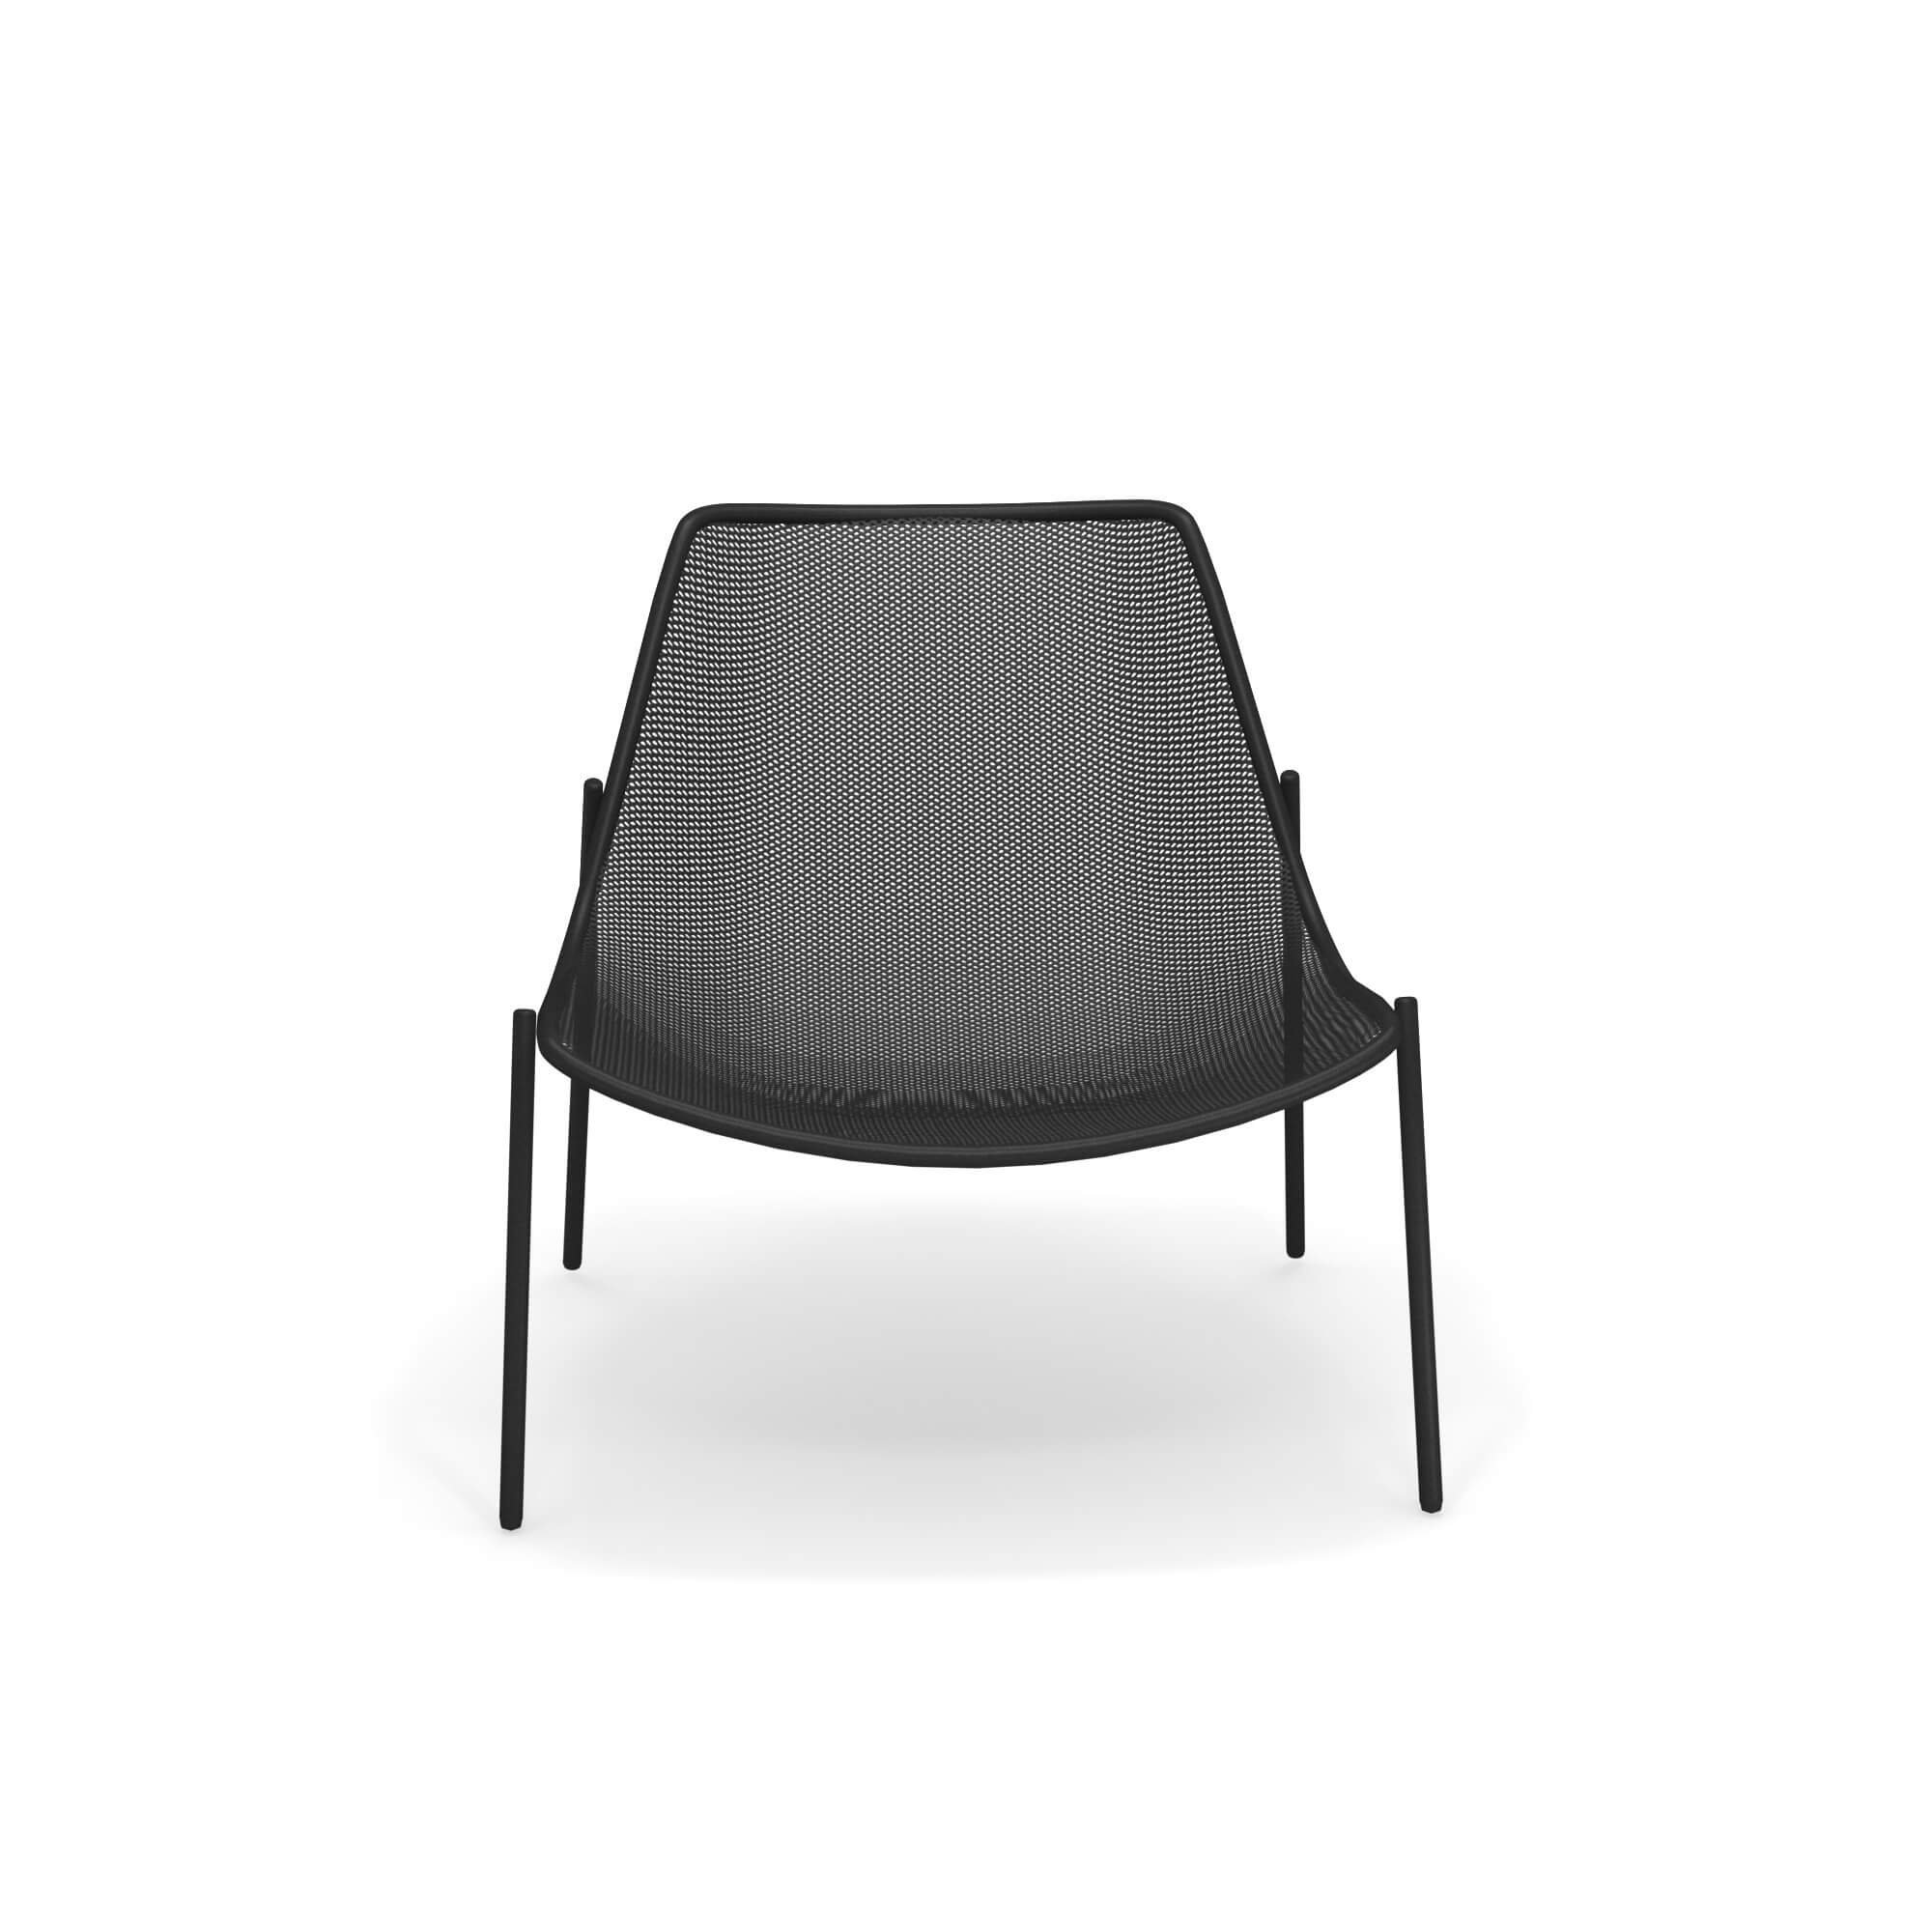 Round Lounge Chair from Emu, designed by Christophe Pillet